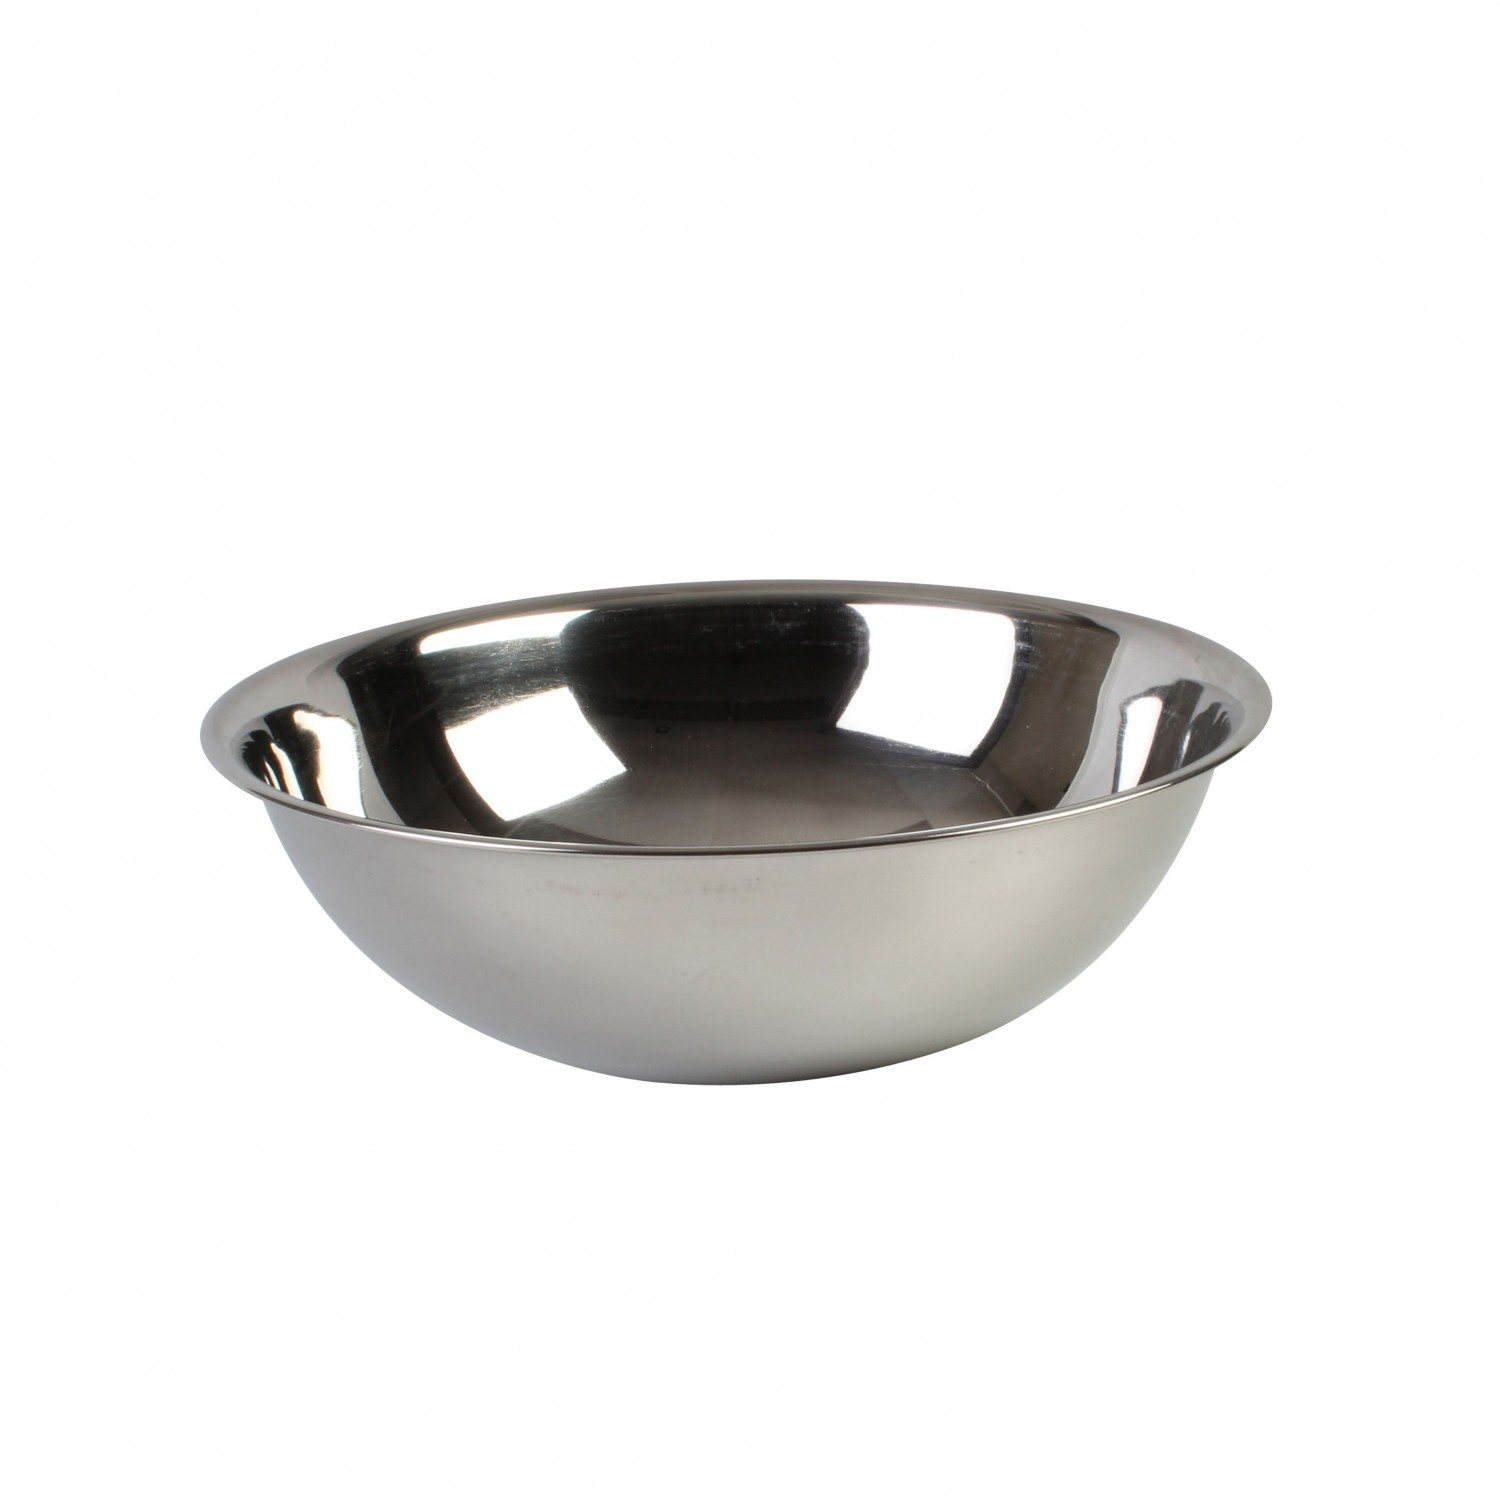 Thunder Group SLMB207 Heavy Duty Stainless Steel Mixing Bowl 13 Qt.- 1 doz